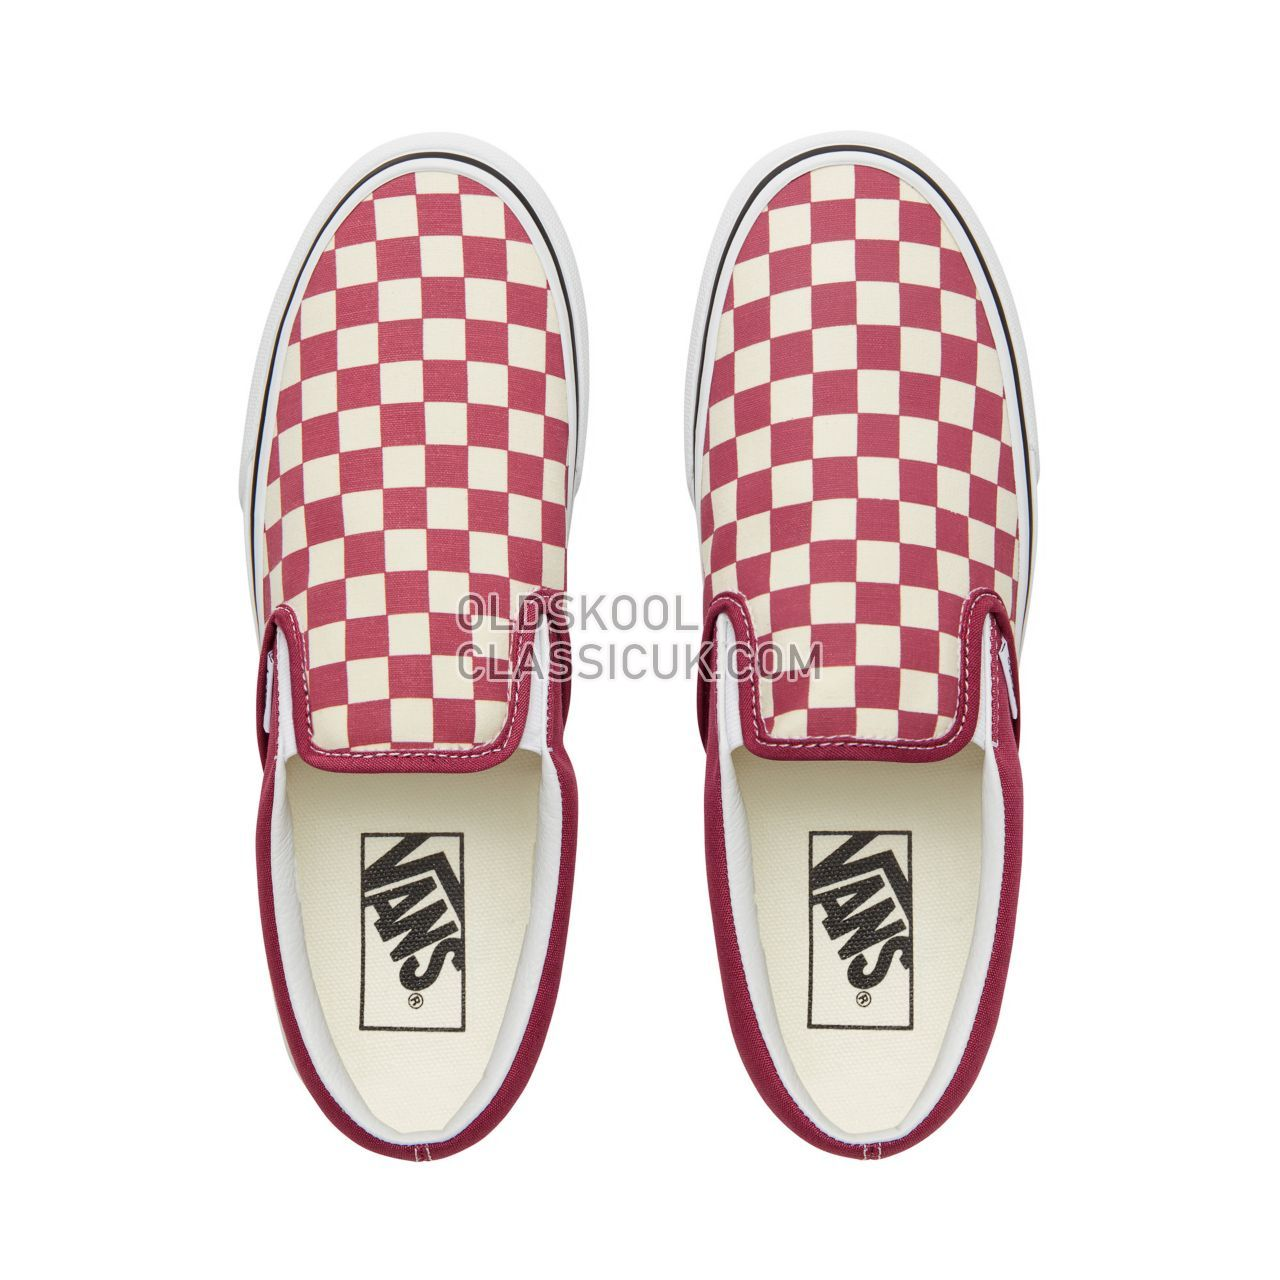 a3d51e953d8195 ... Vans Color Theory Checkerboard Classic Slip-On Sneakers (Unisex) Mens ( Checkerboard)